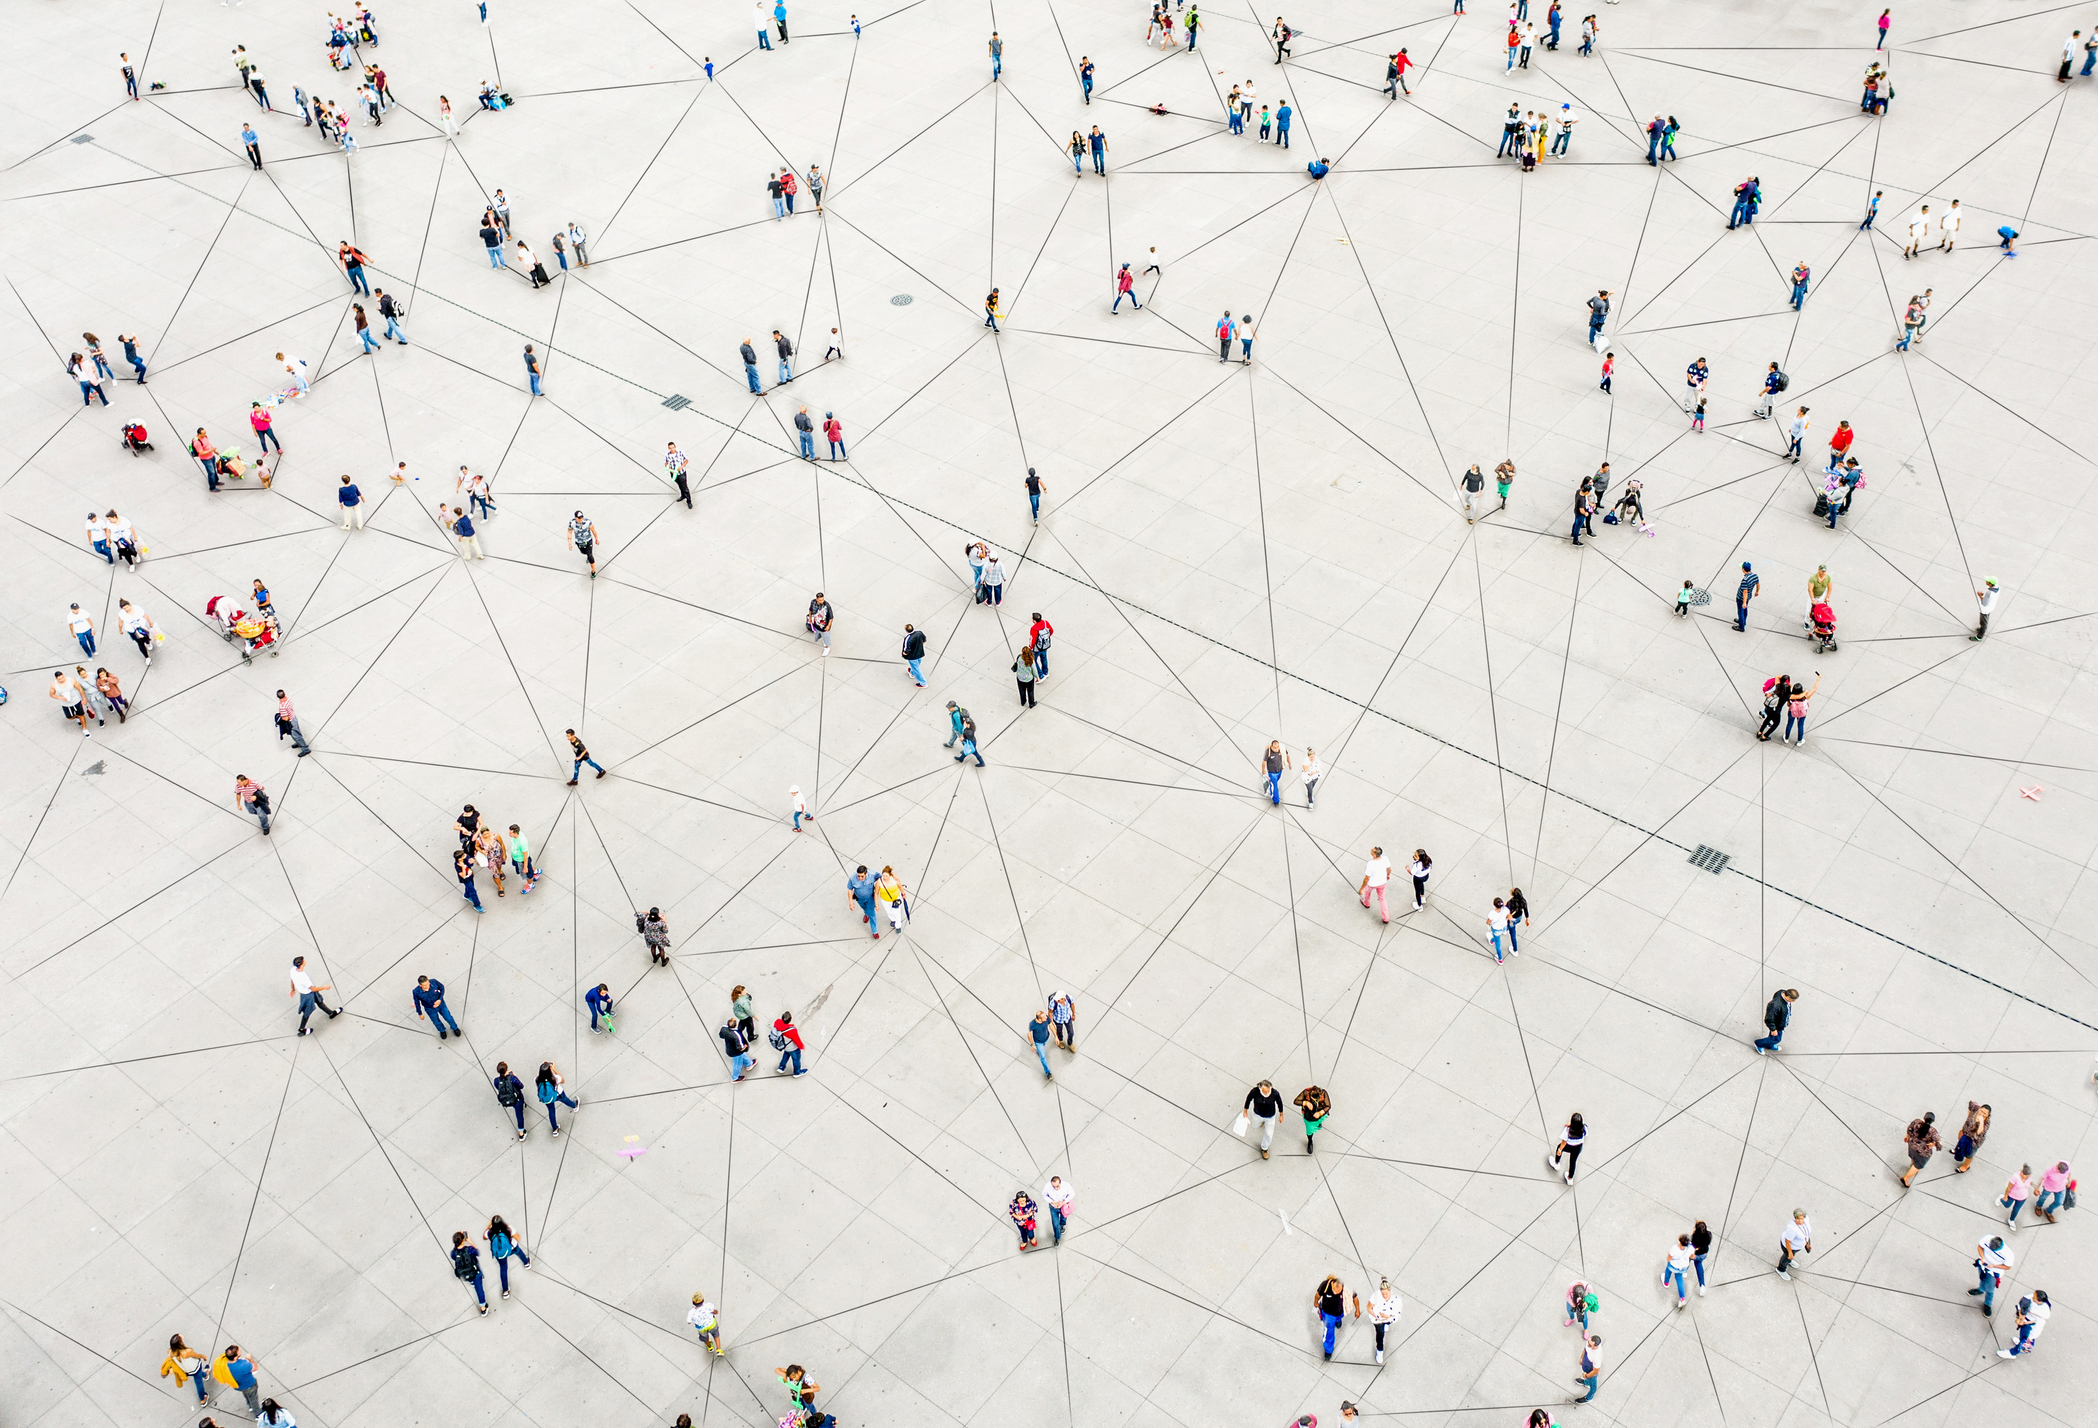 Aerial view of people connected by lines to signify the Zapier sms integration